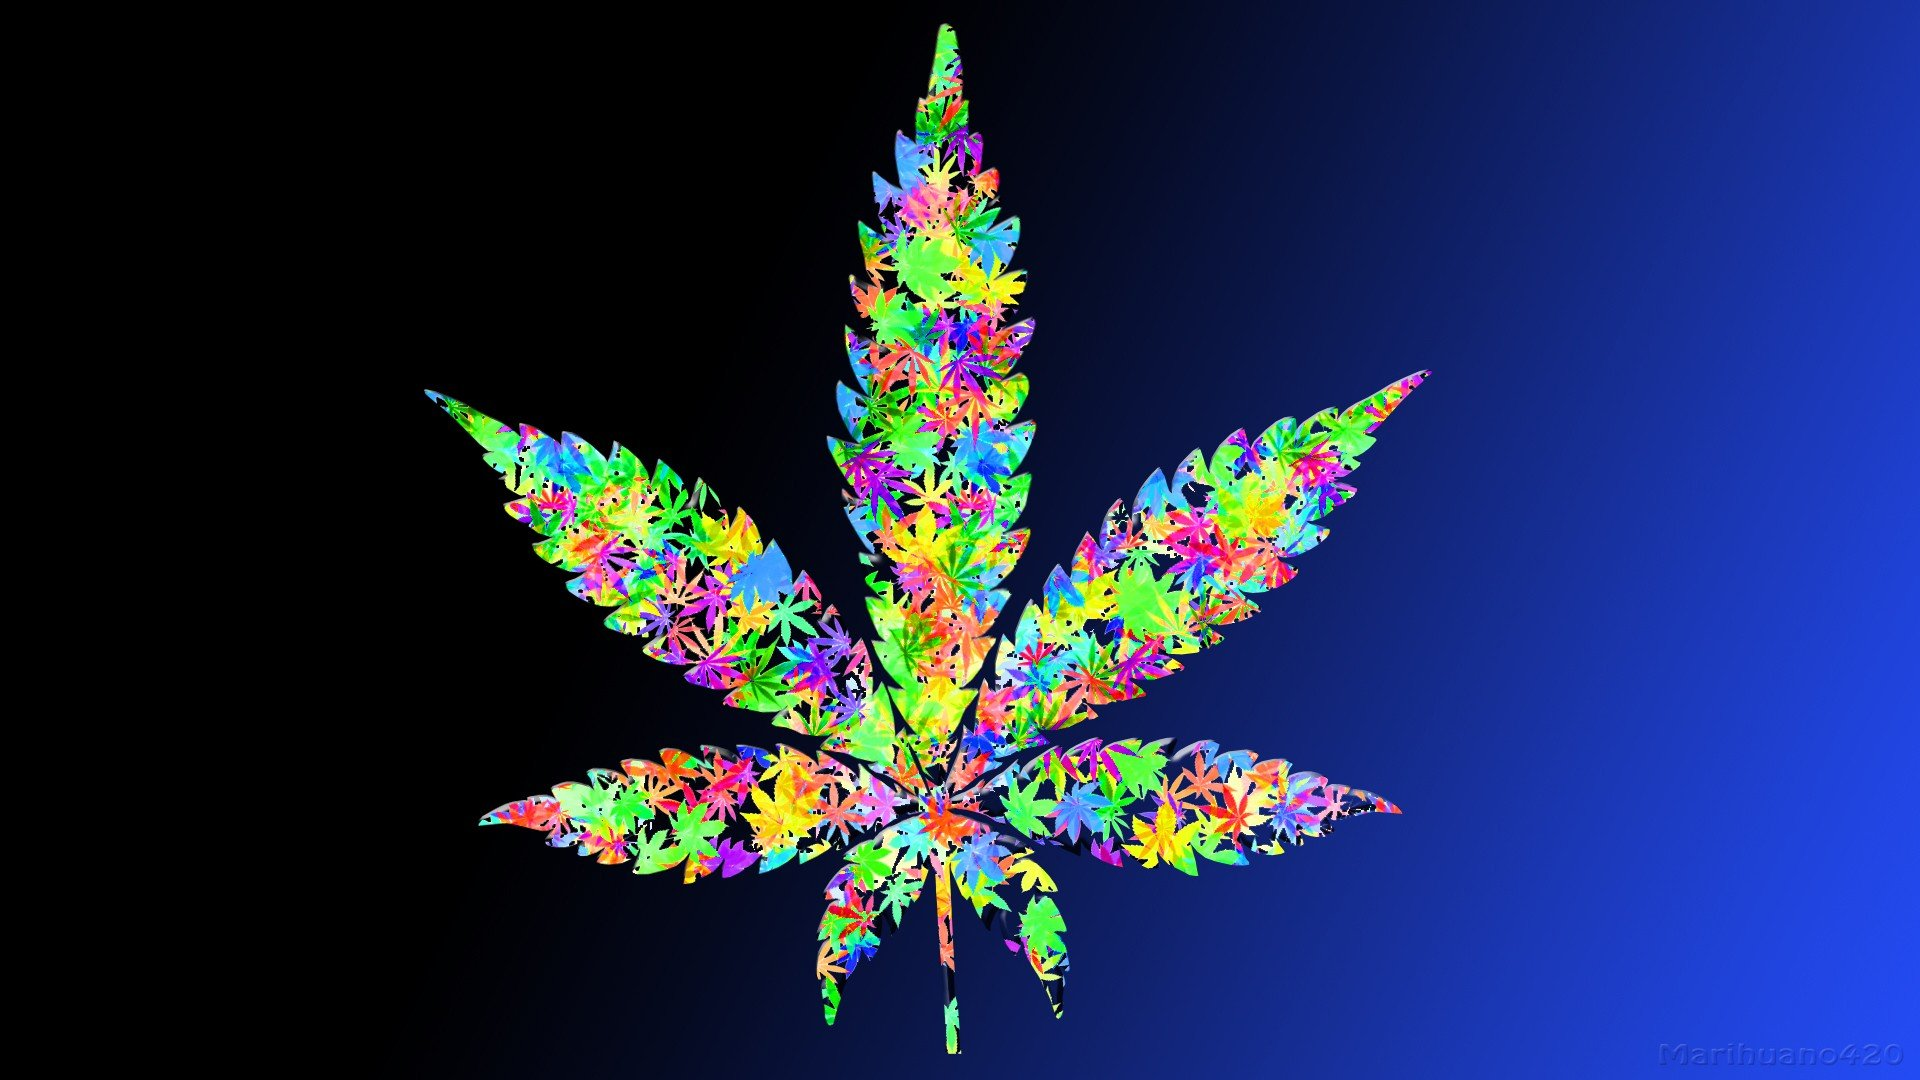 Weed 3D Wallpaper 47 images  Get the Best HD